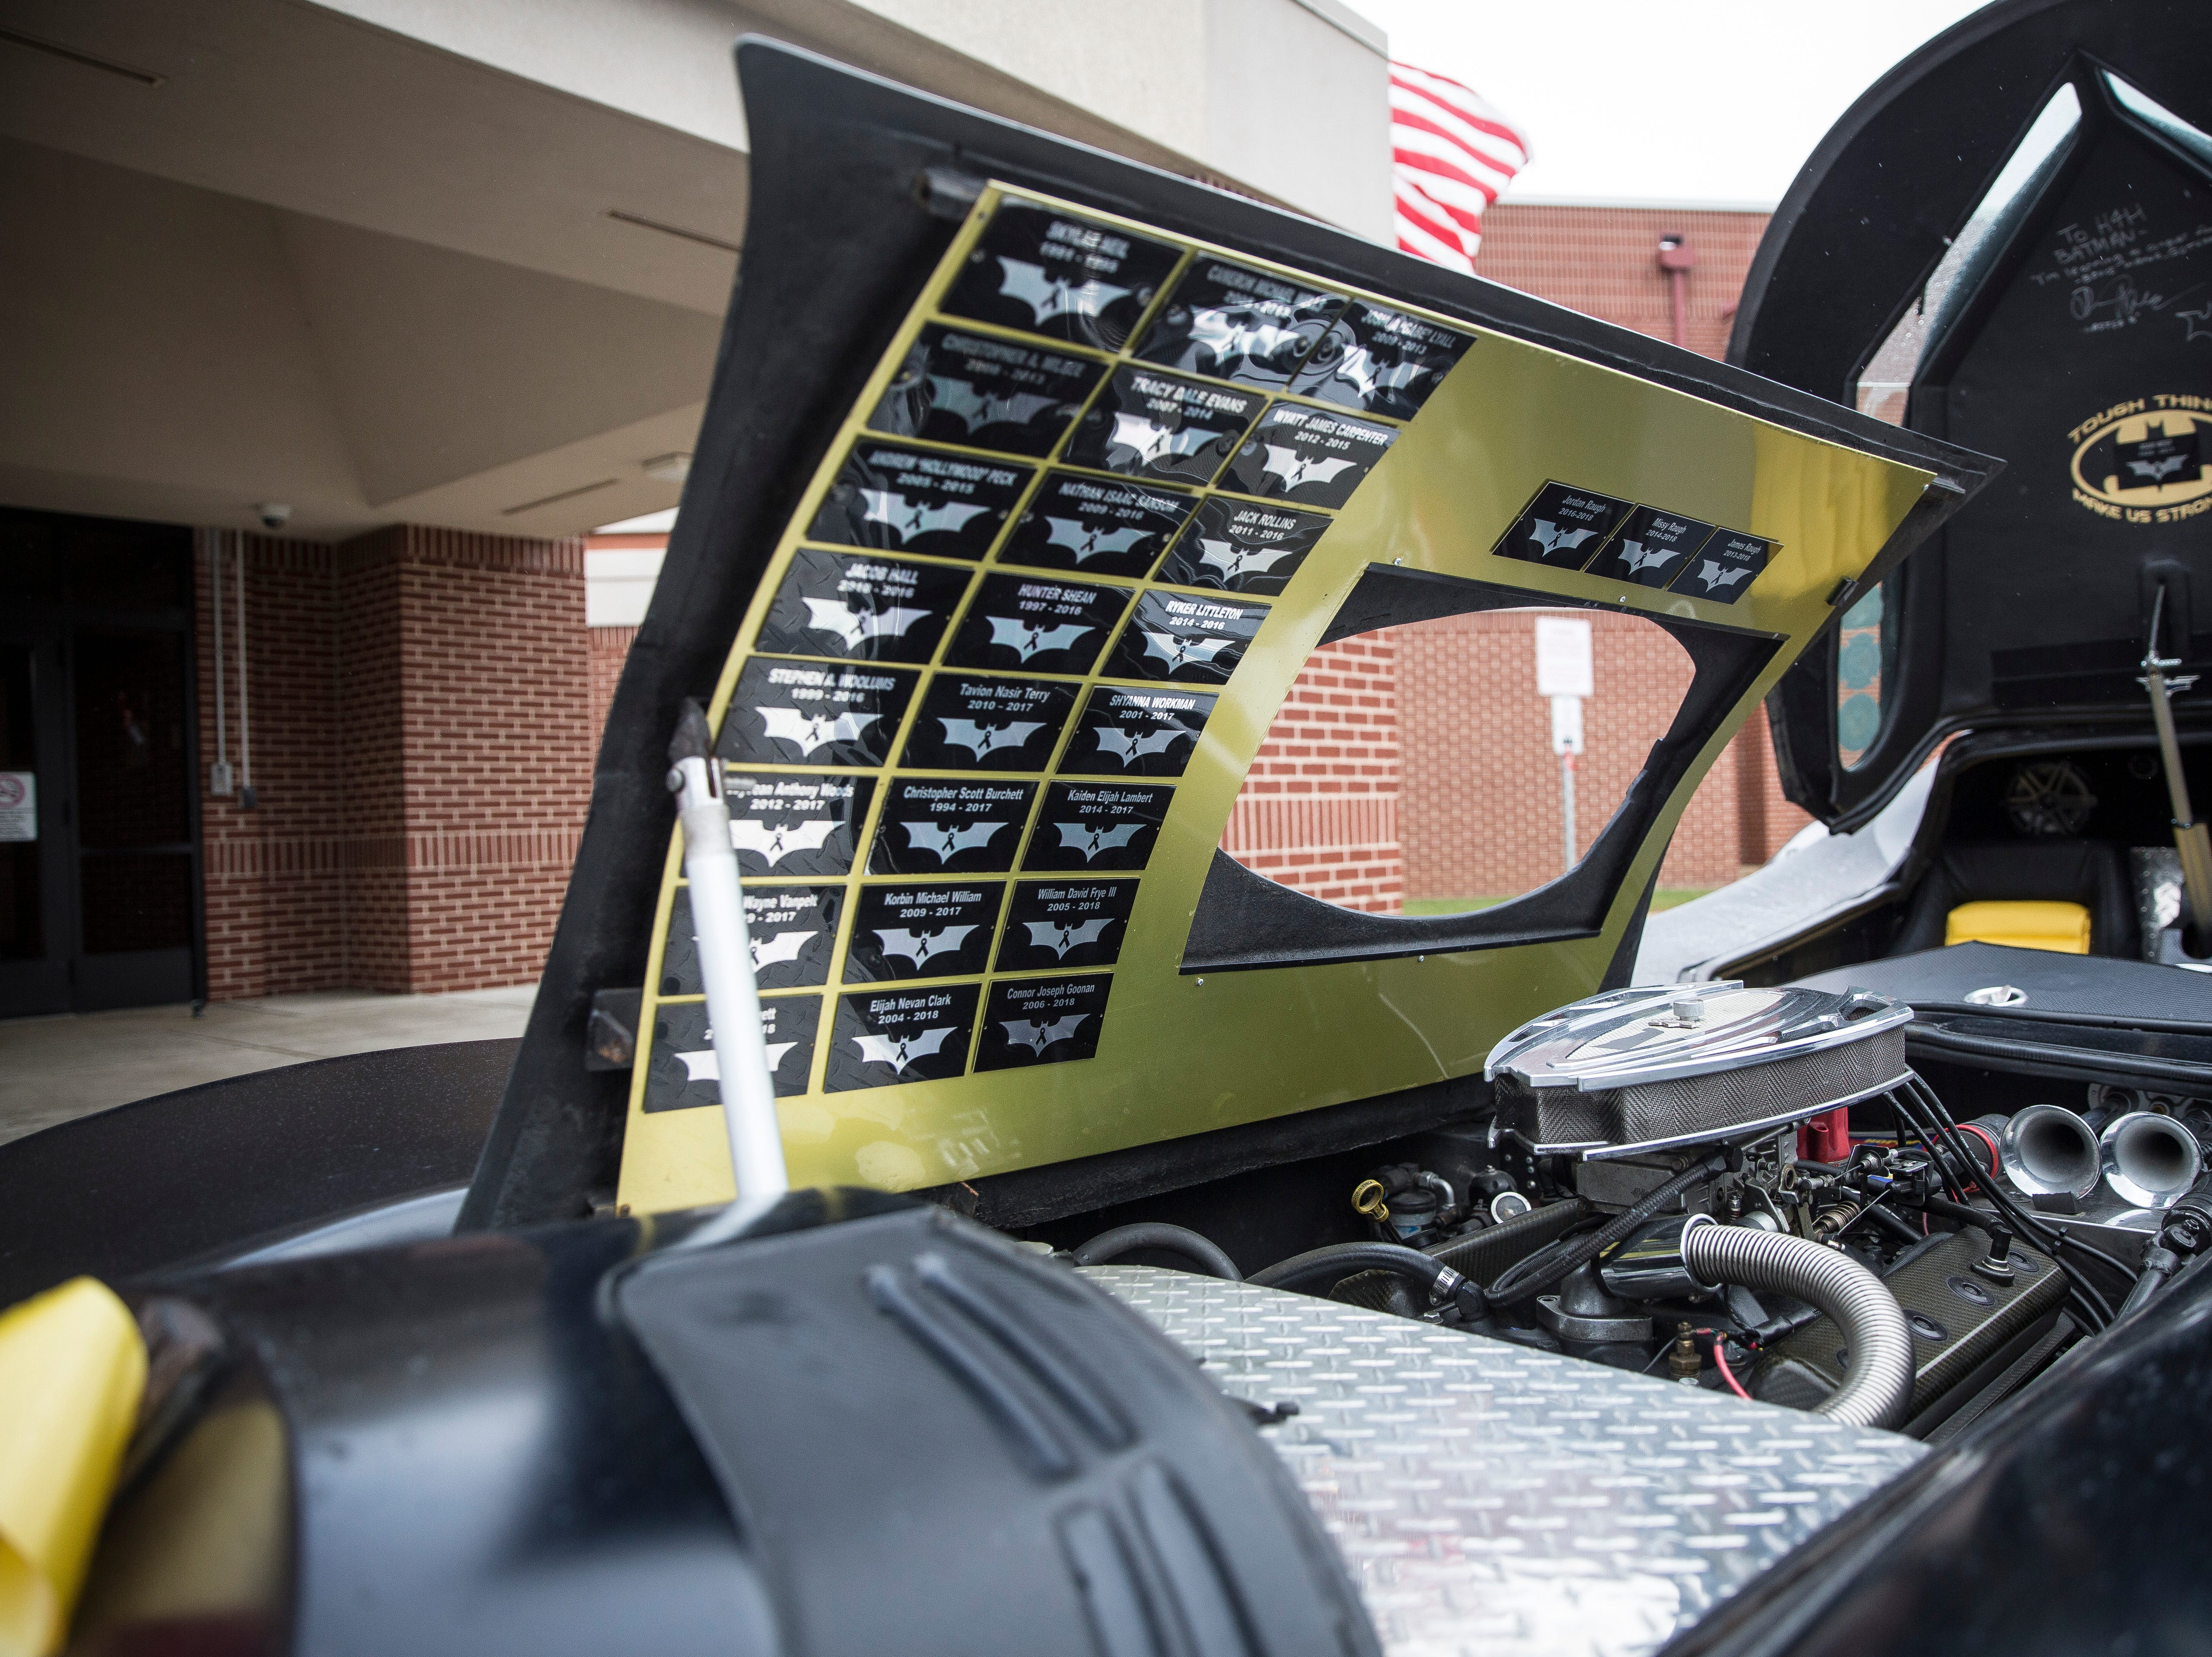 Plaques on the inside of the Batmobile hood recognize children that the H4H Foundation have served as pallbearers with. Many of the children have ridden in the Batmobile before passing away.